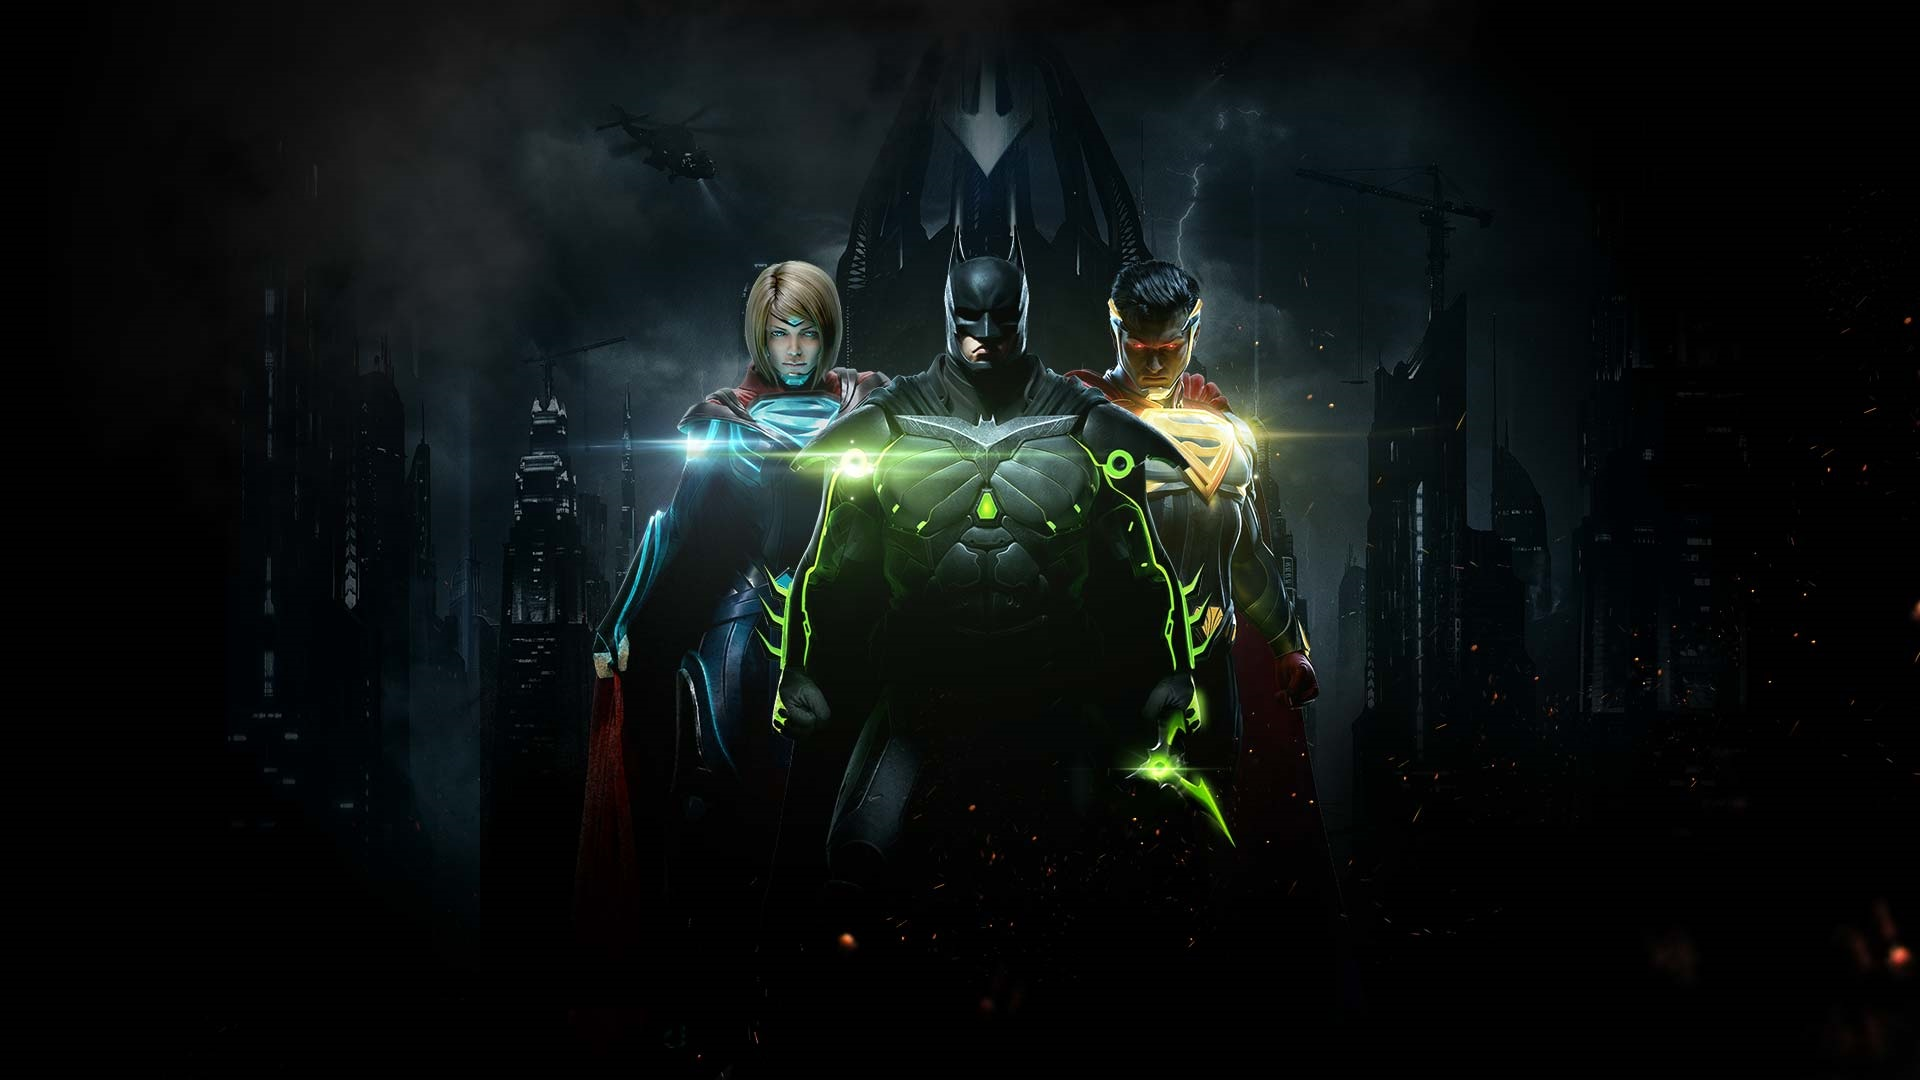 Injustice 2 Superman Hd Games 4k Wallpapers Images